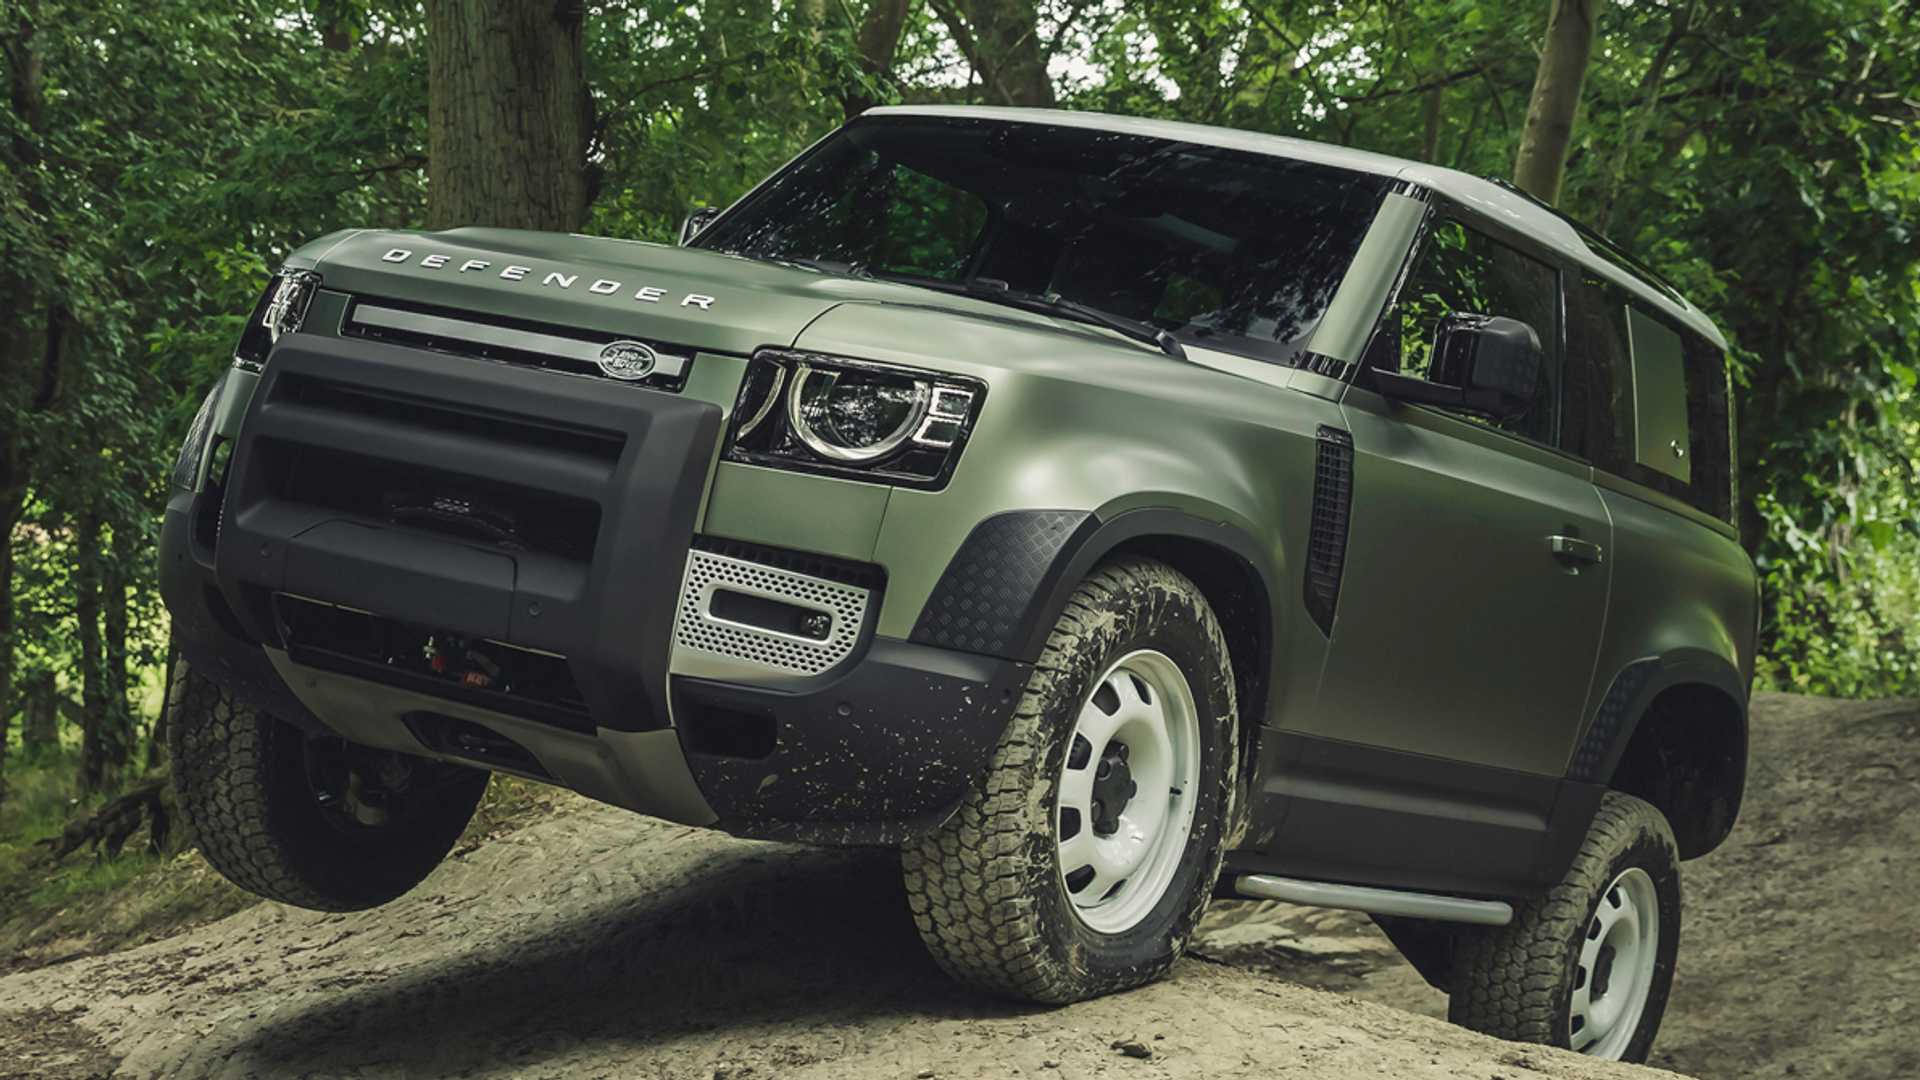 land-rover-defender-2020-off-road-capability